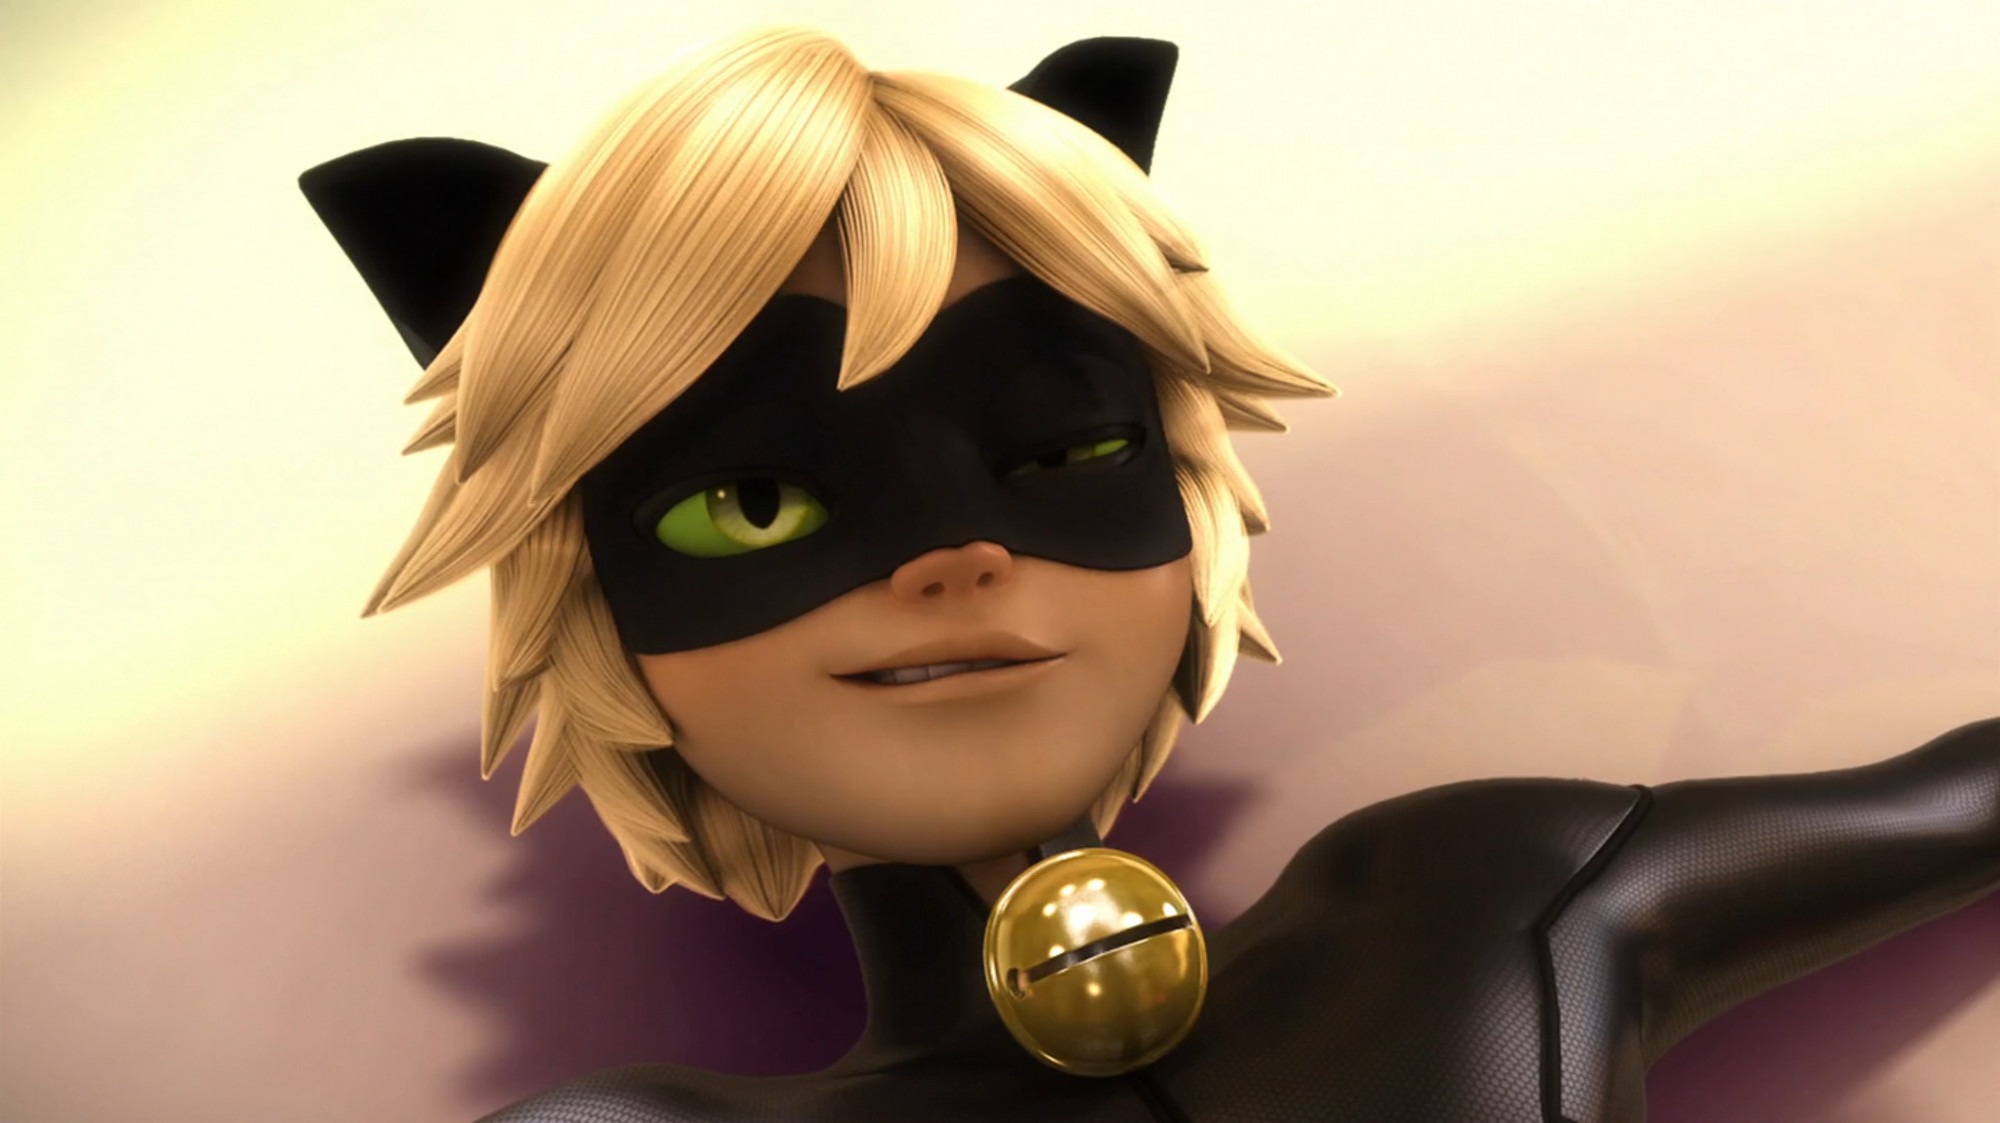 Miraculous Ladybug Chat Noir or Cat Noir? Which do you like more?